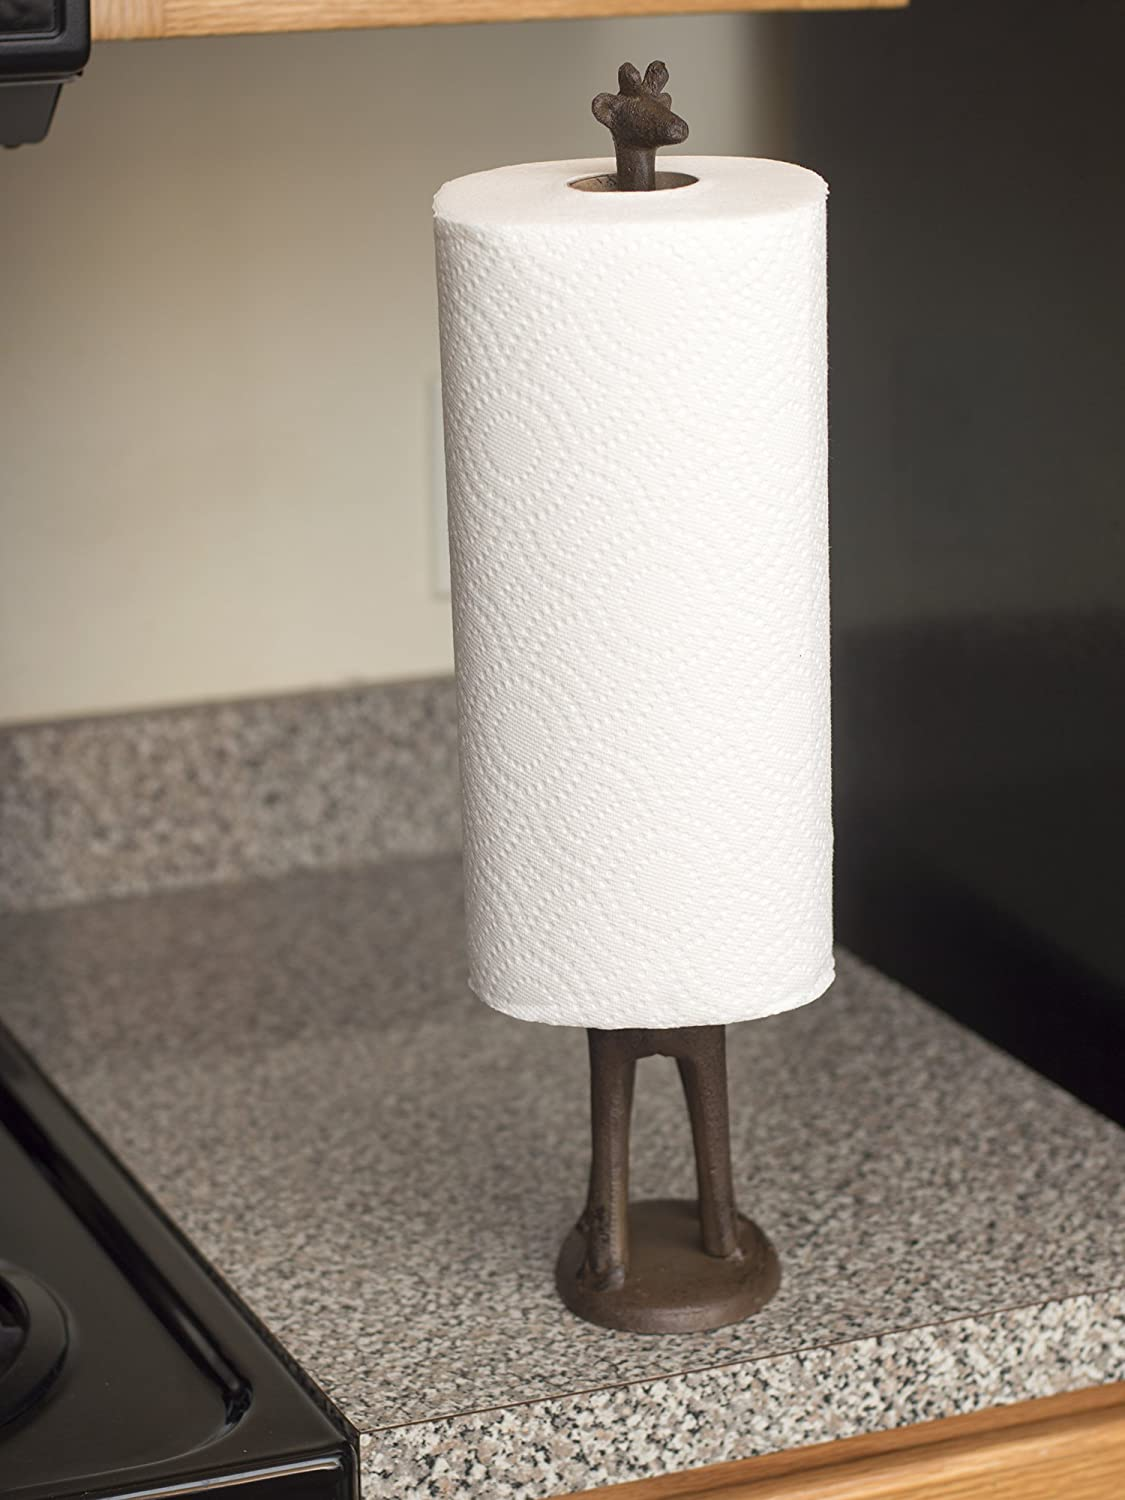 Amazoncom Paper Towel Holder Or Free Standing Toilet Paper -  bathroom paper towel holder